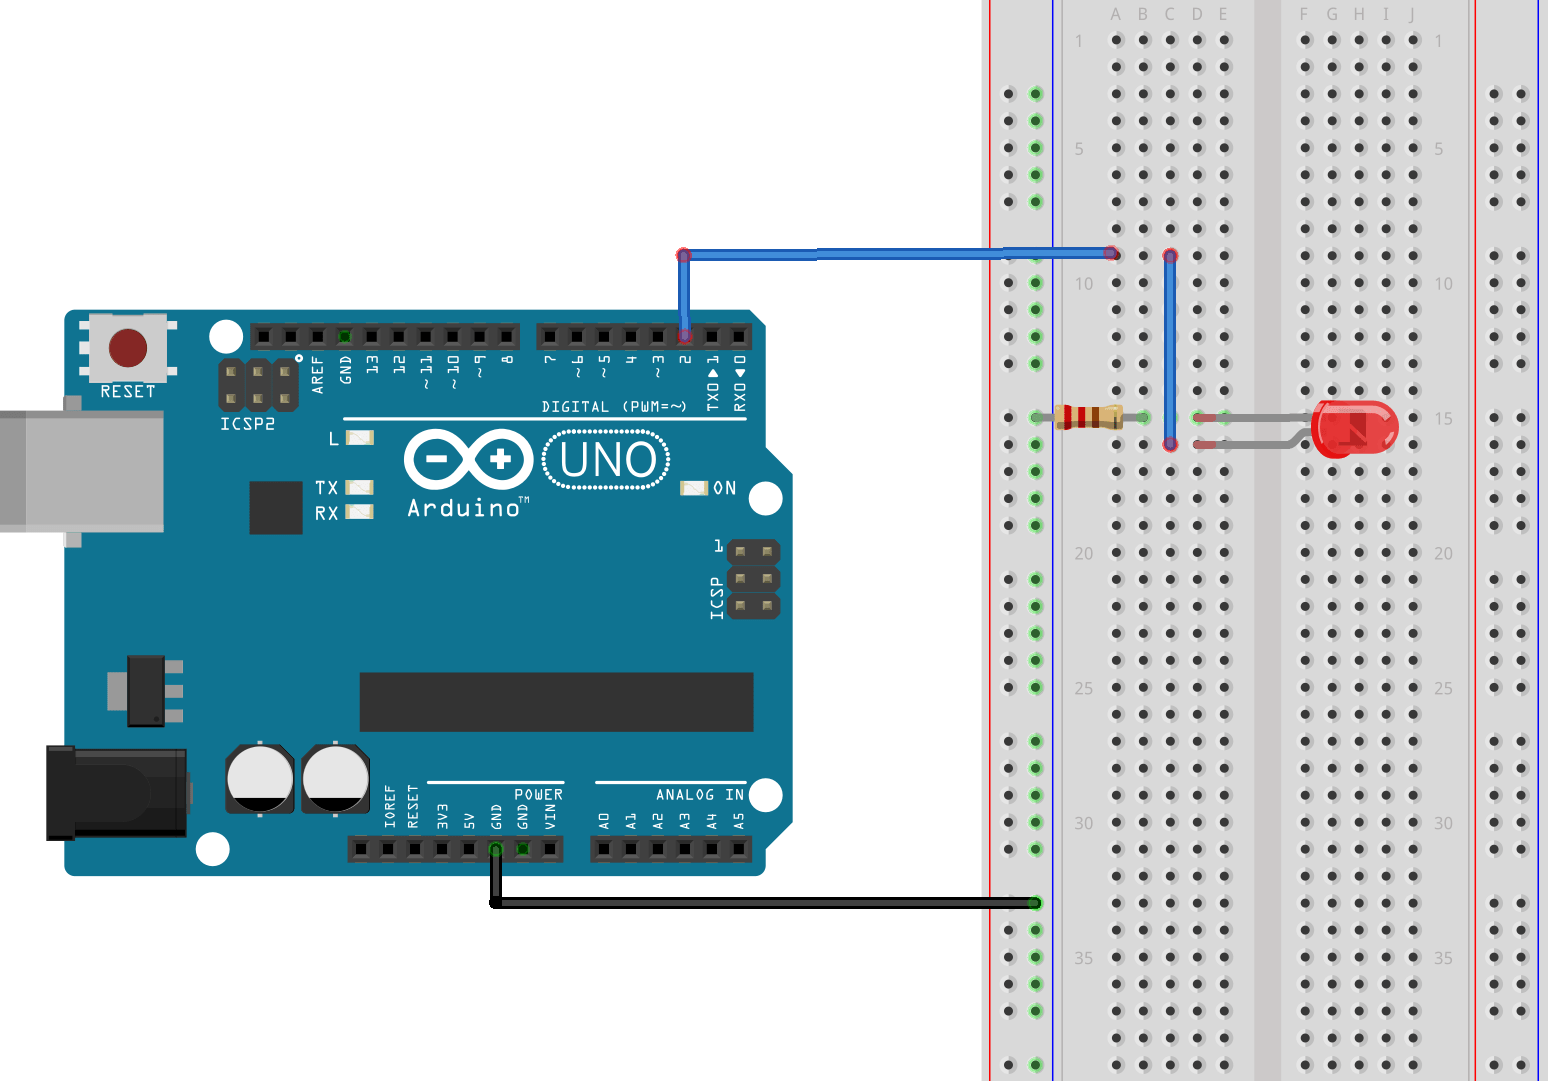 hight resolution of to change the brightness of the led the program will vary the duty cycle of the pwm signal output of pin 2